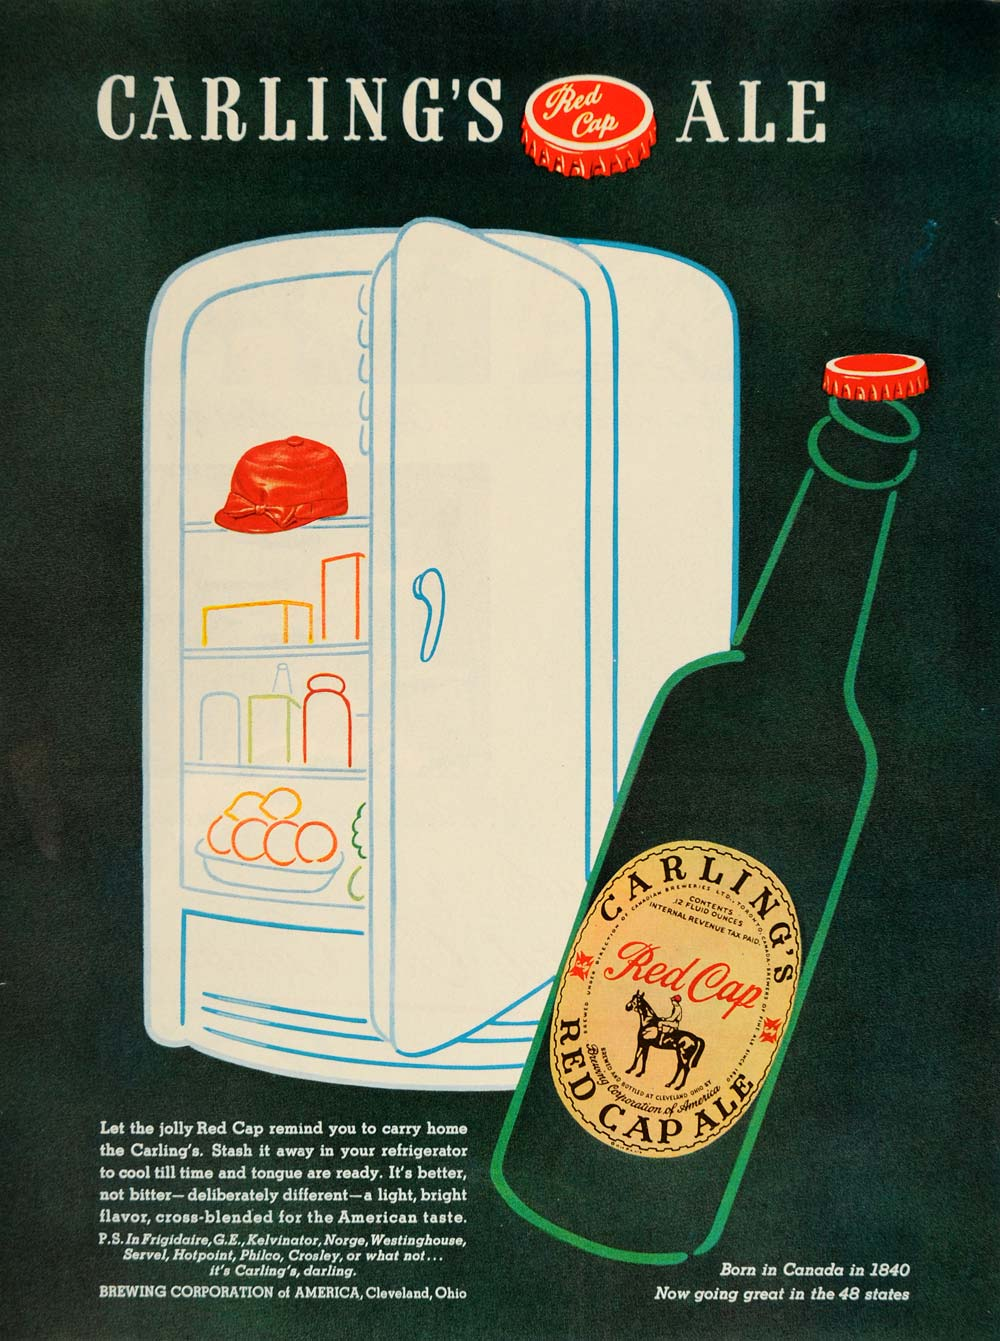 1947 Ad Carling's Red Cap Ale Beer Bottle Refrigerator - ORIGINAL TM1